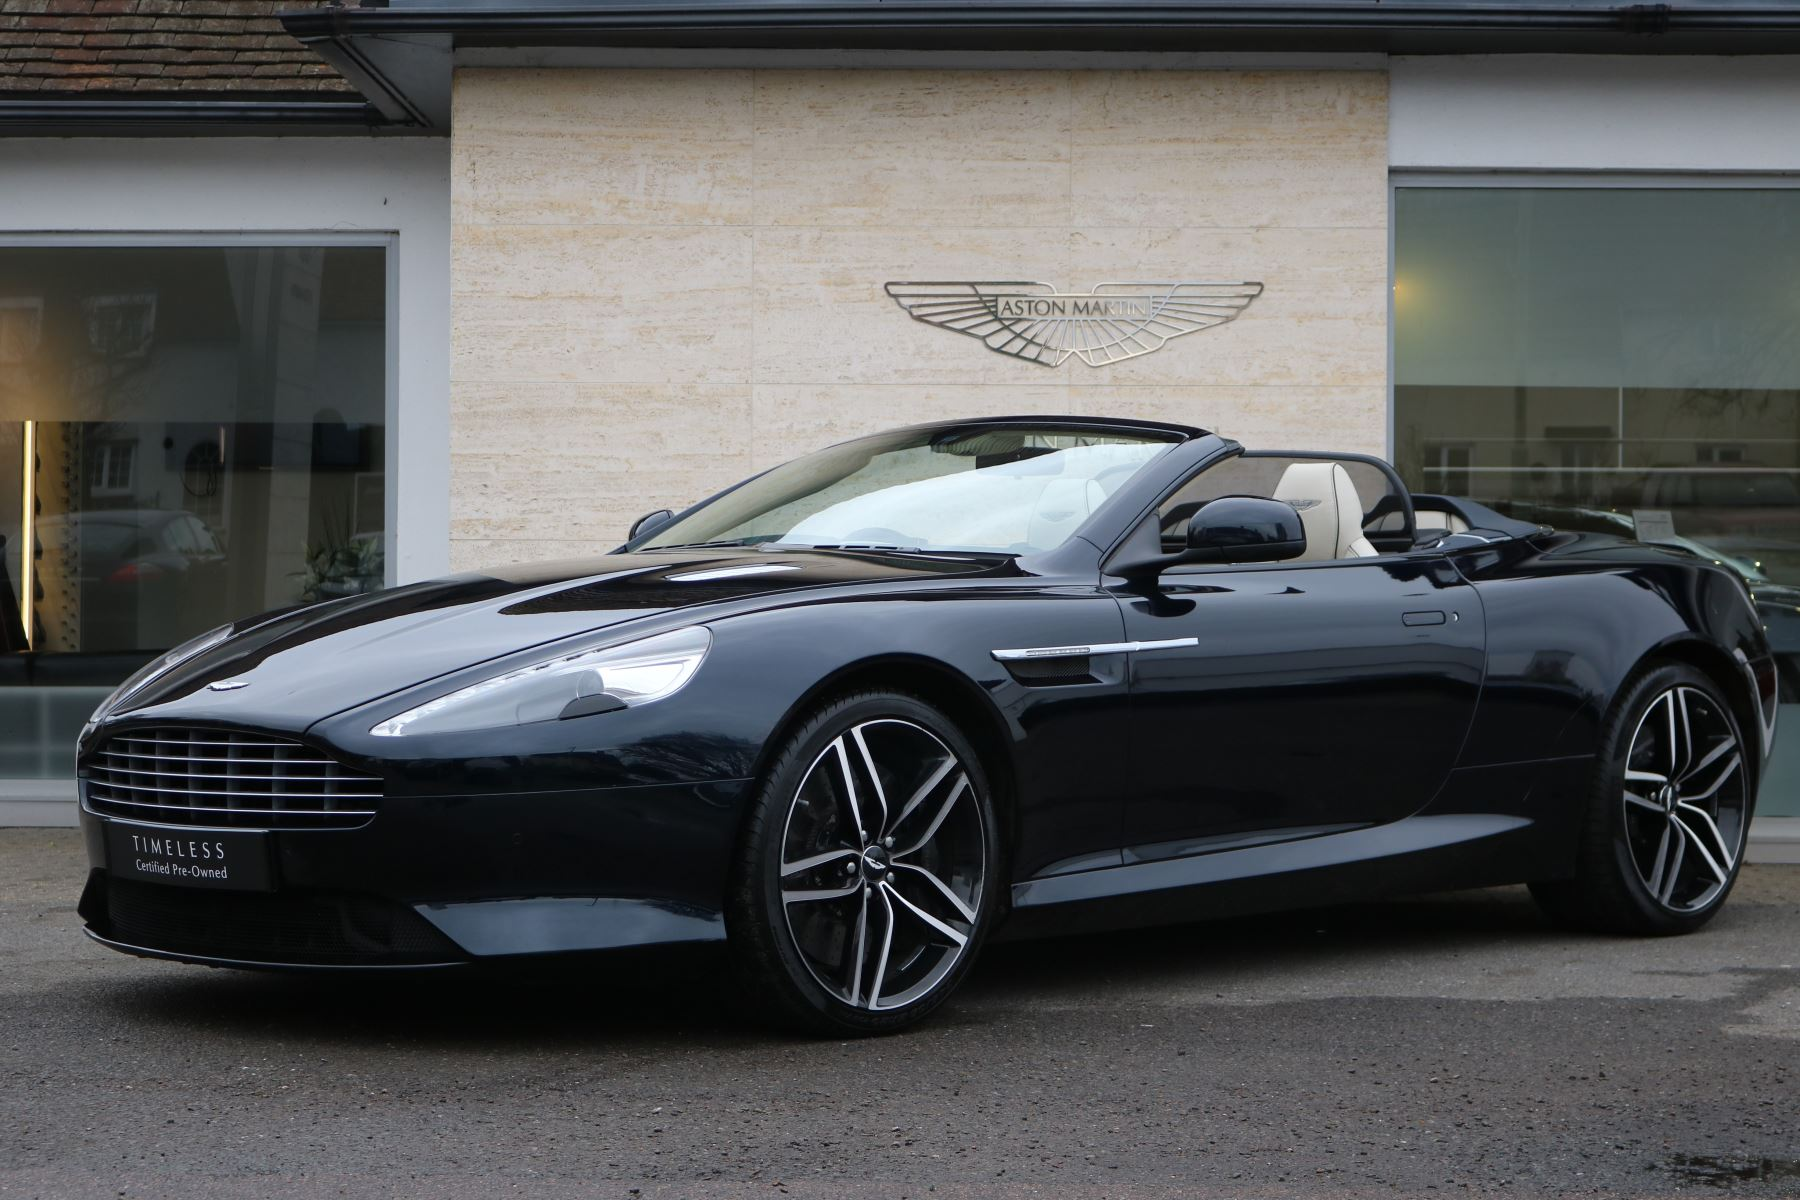 Aston Martin DB9 V12 GT 2dr Volante Touchtronic 5.9 Automatic Convertible (2016) image